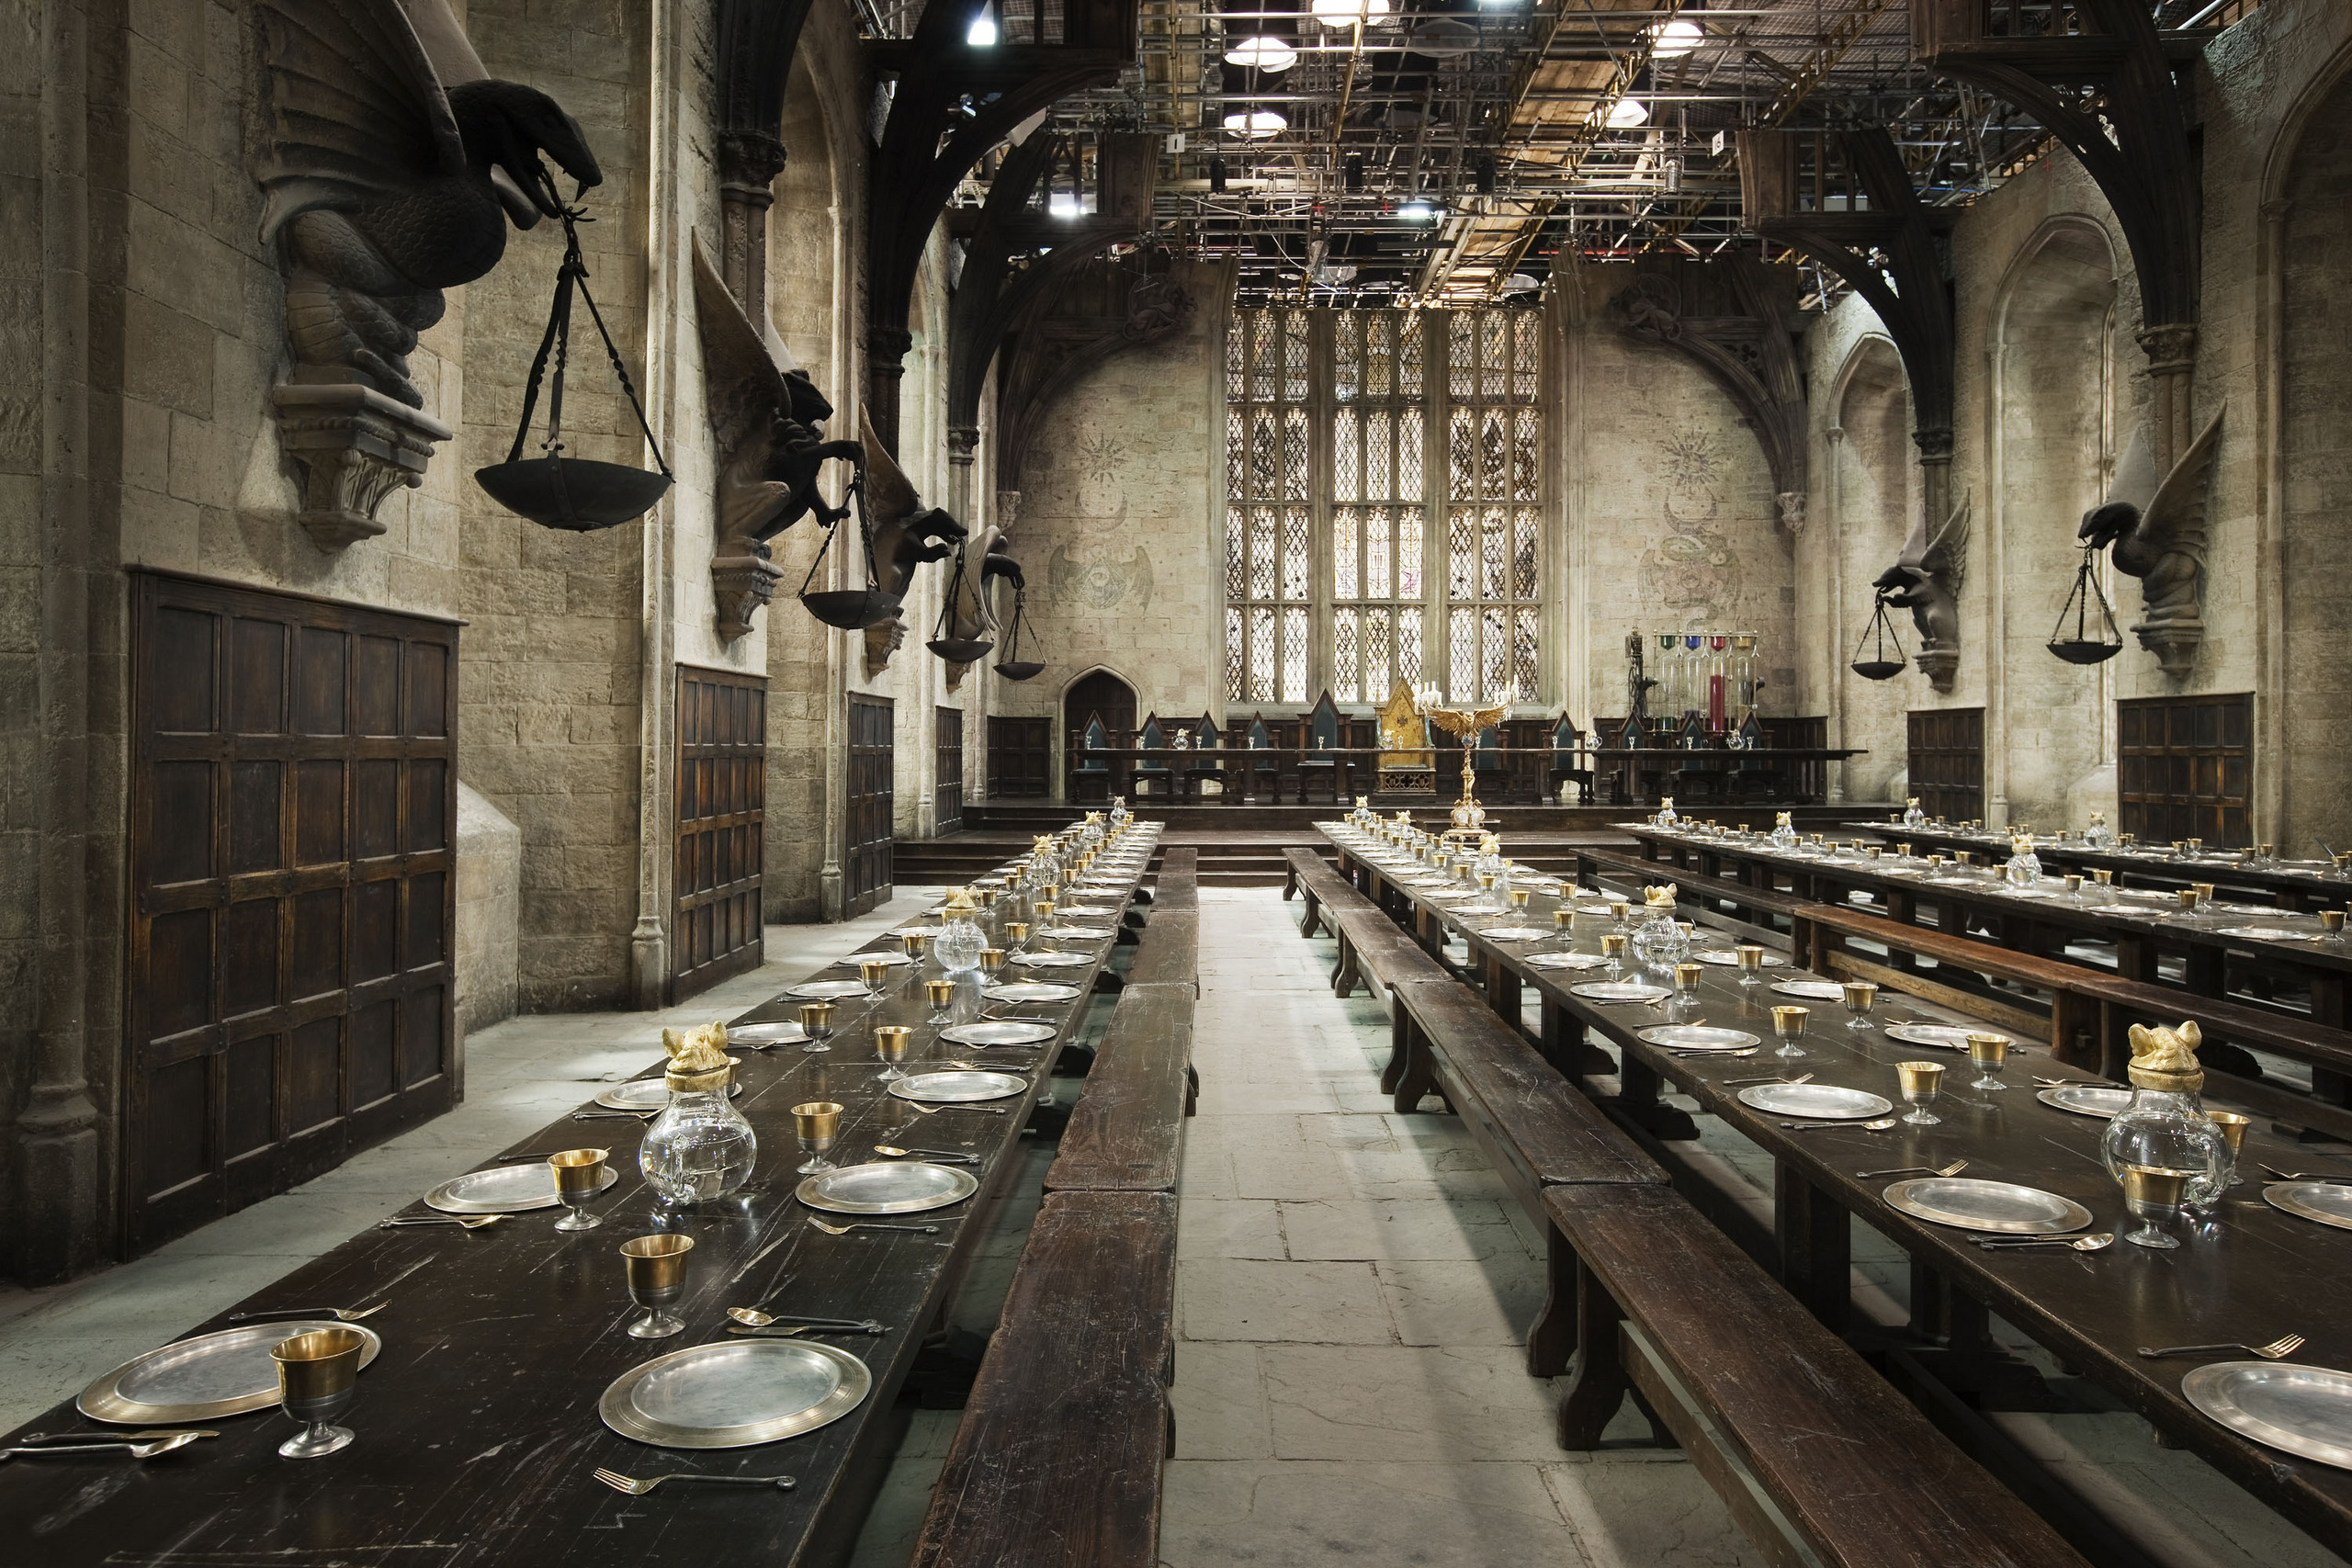 Sala De Jantar Hogwarts ~ Harry Potter images Behind the scenes HD wallpaper and background